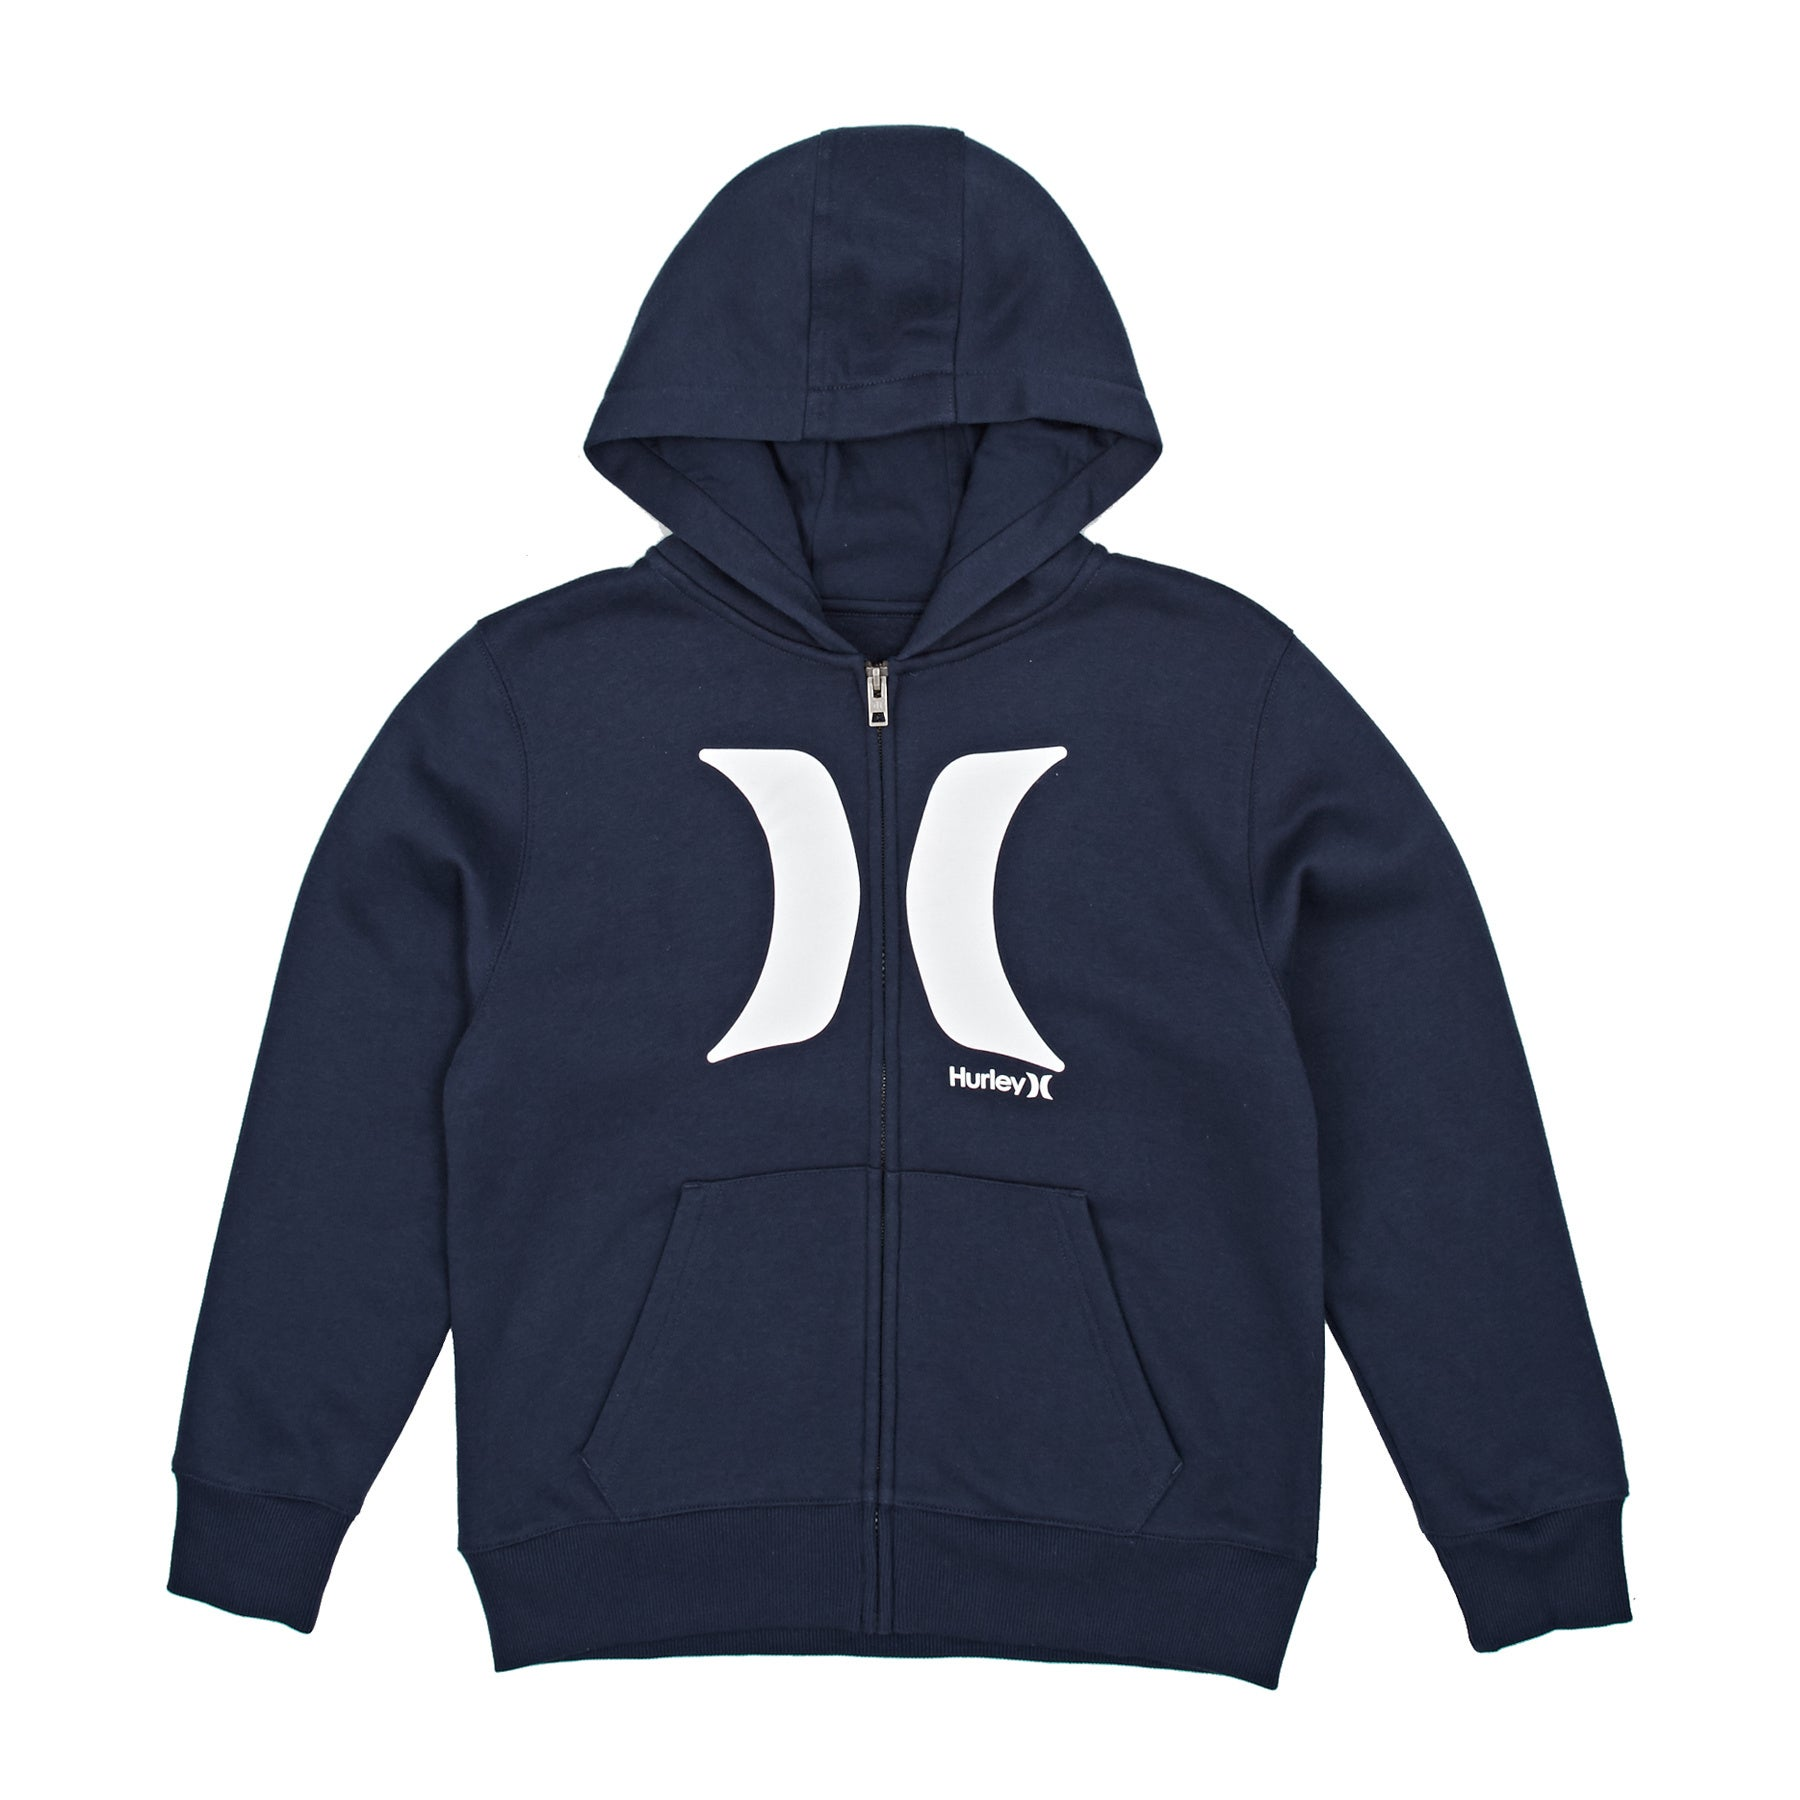 Hurley The Icon Boys Zip Hoody - Midnight Navy